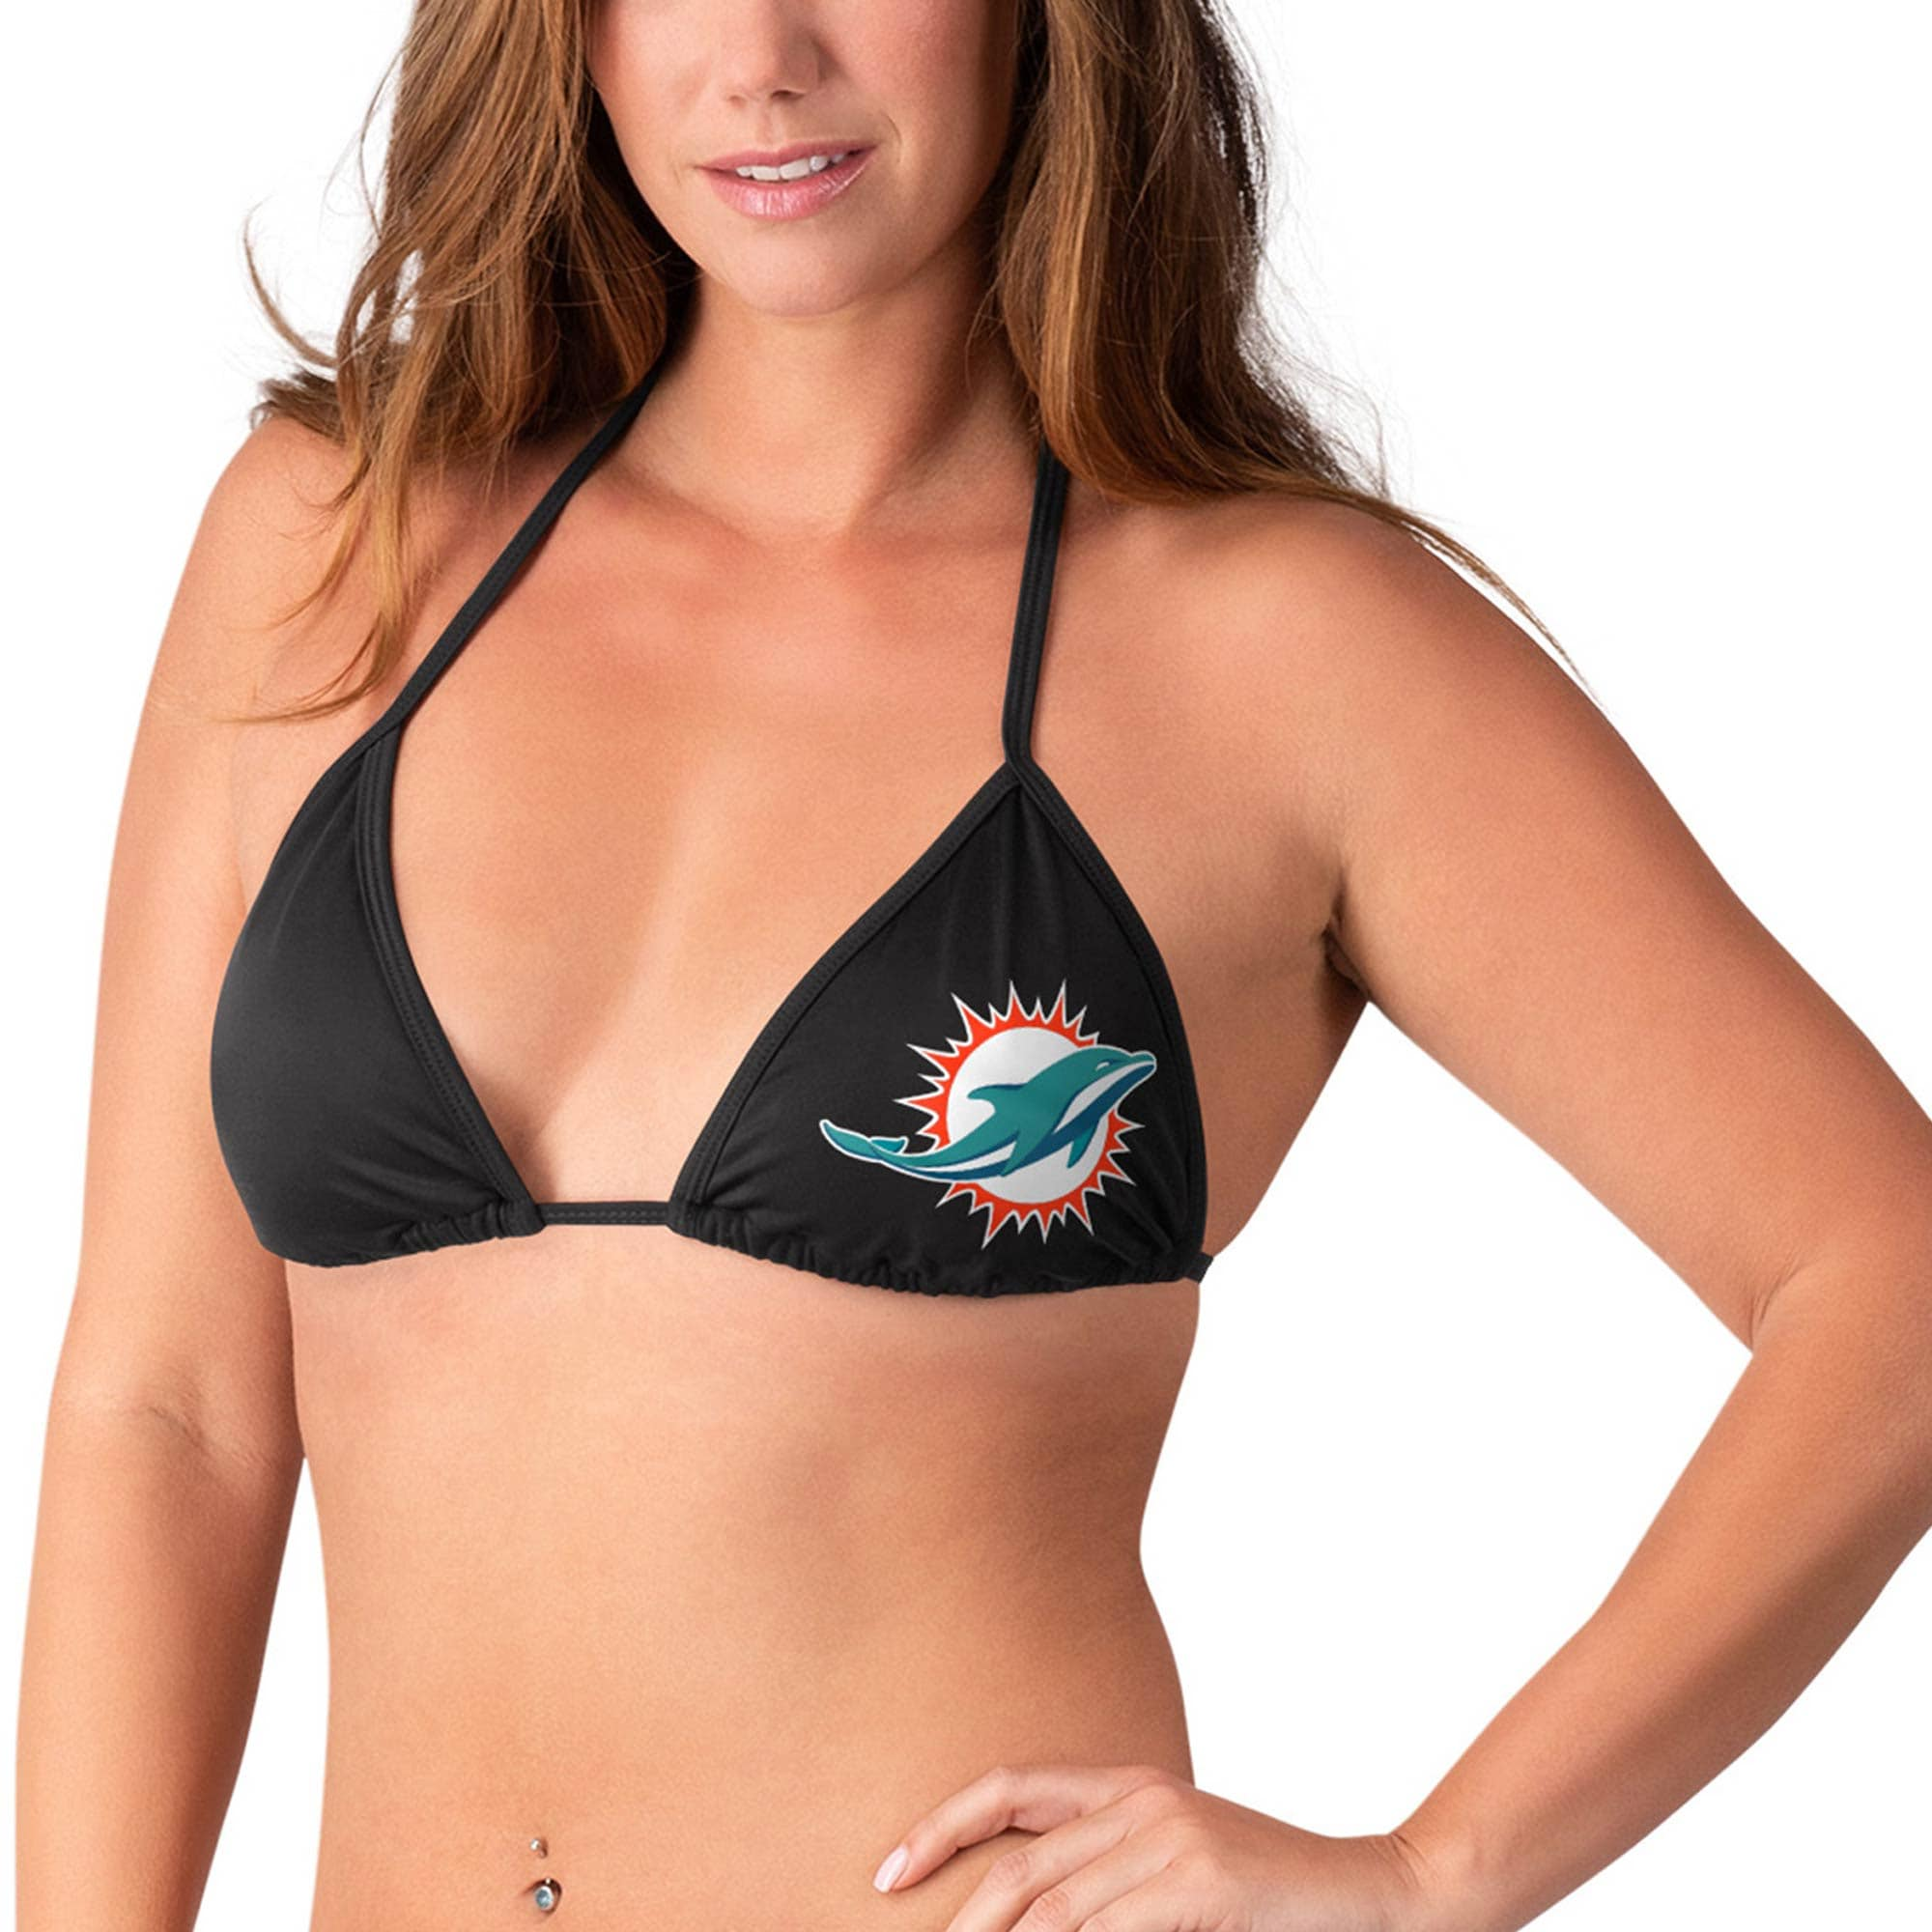 Miami Dolphins G-III 4Her by Carl Banks Women's Without Limits Bikini Top - Black